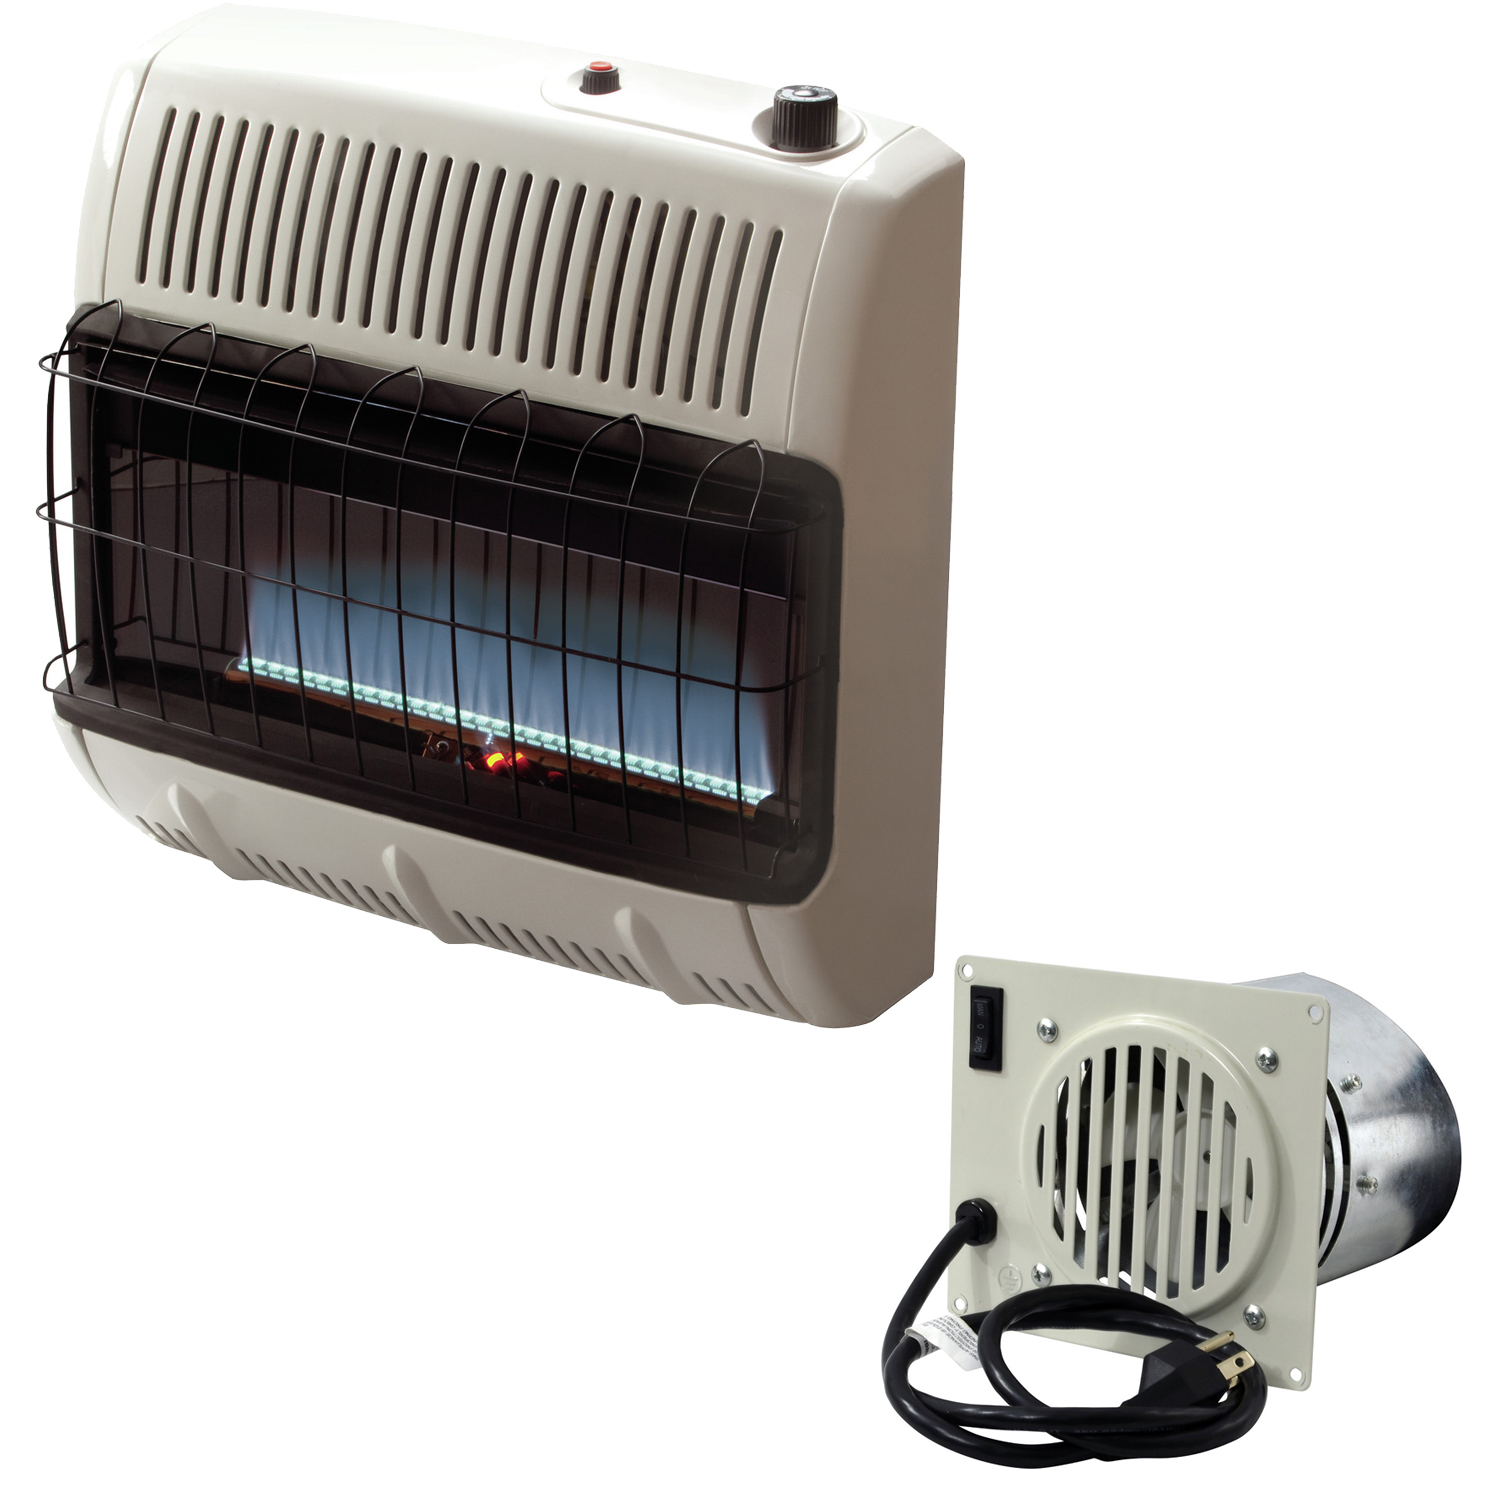 Mr. Heater Vent Free Flame 30k BTU Propane Heater (Blue) + Mr. Heater Corporation Vent Free Blower Fan Kit